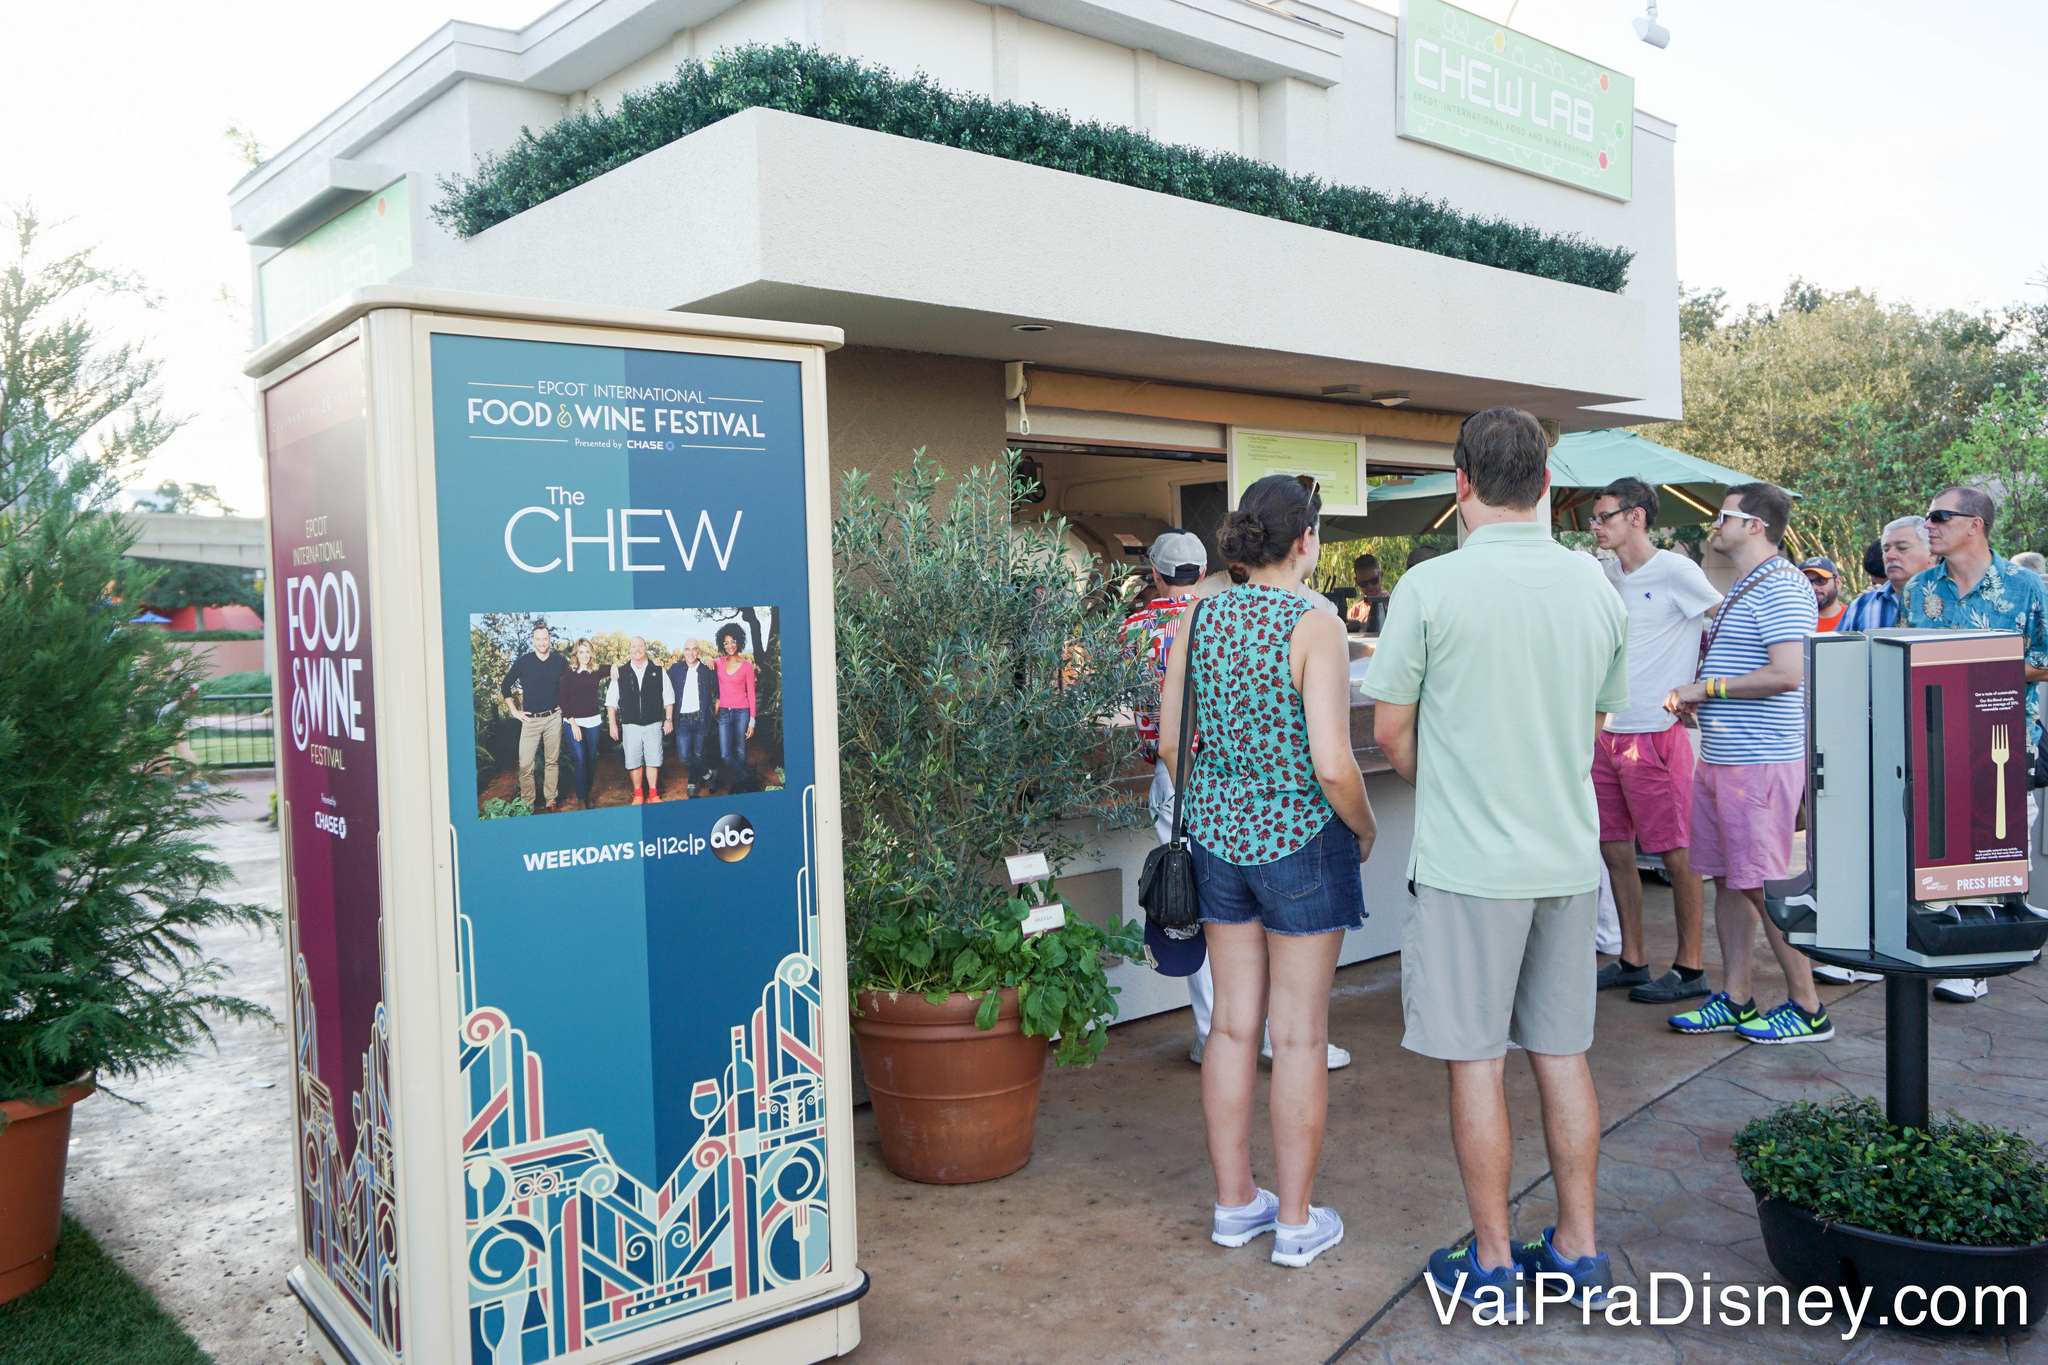 Espaço do The Chew no festival de 2015.